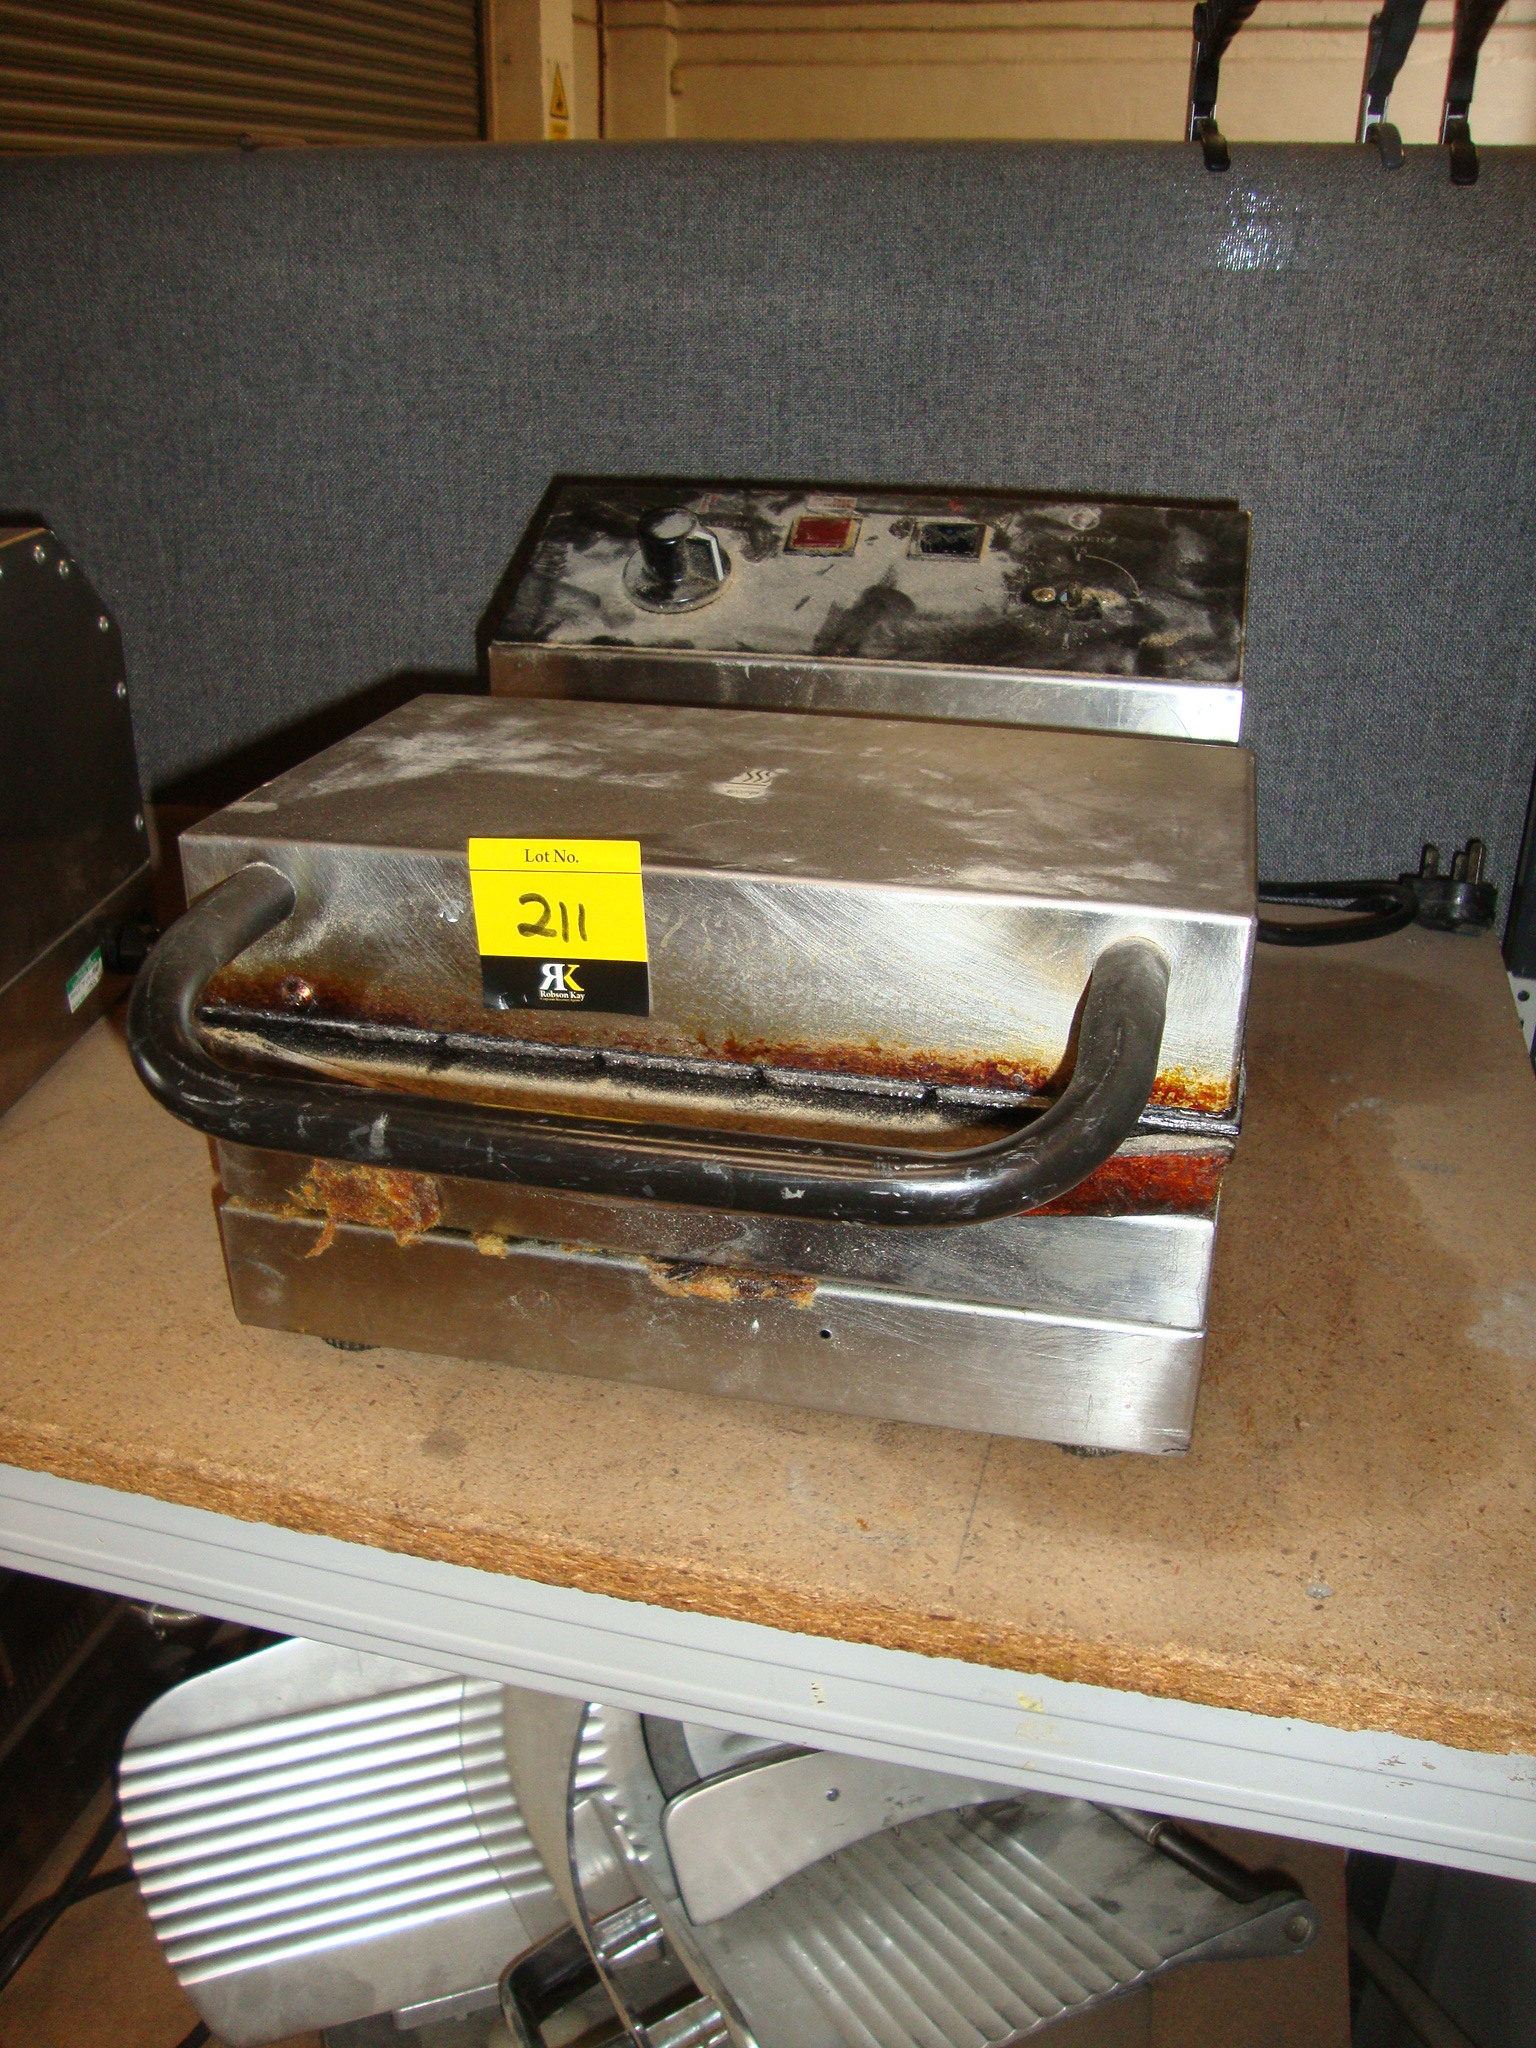 Lot 211 Stainless steel commercial waffle maker #C6BC05